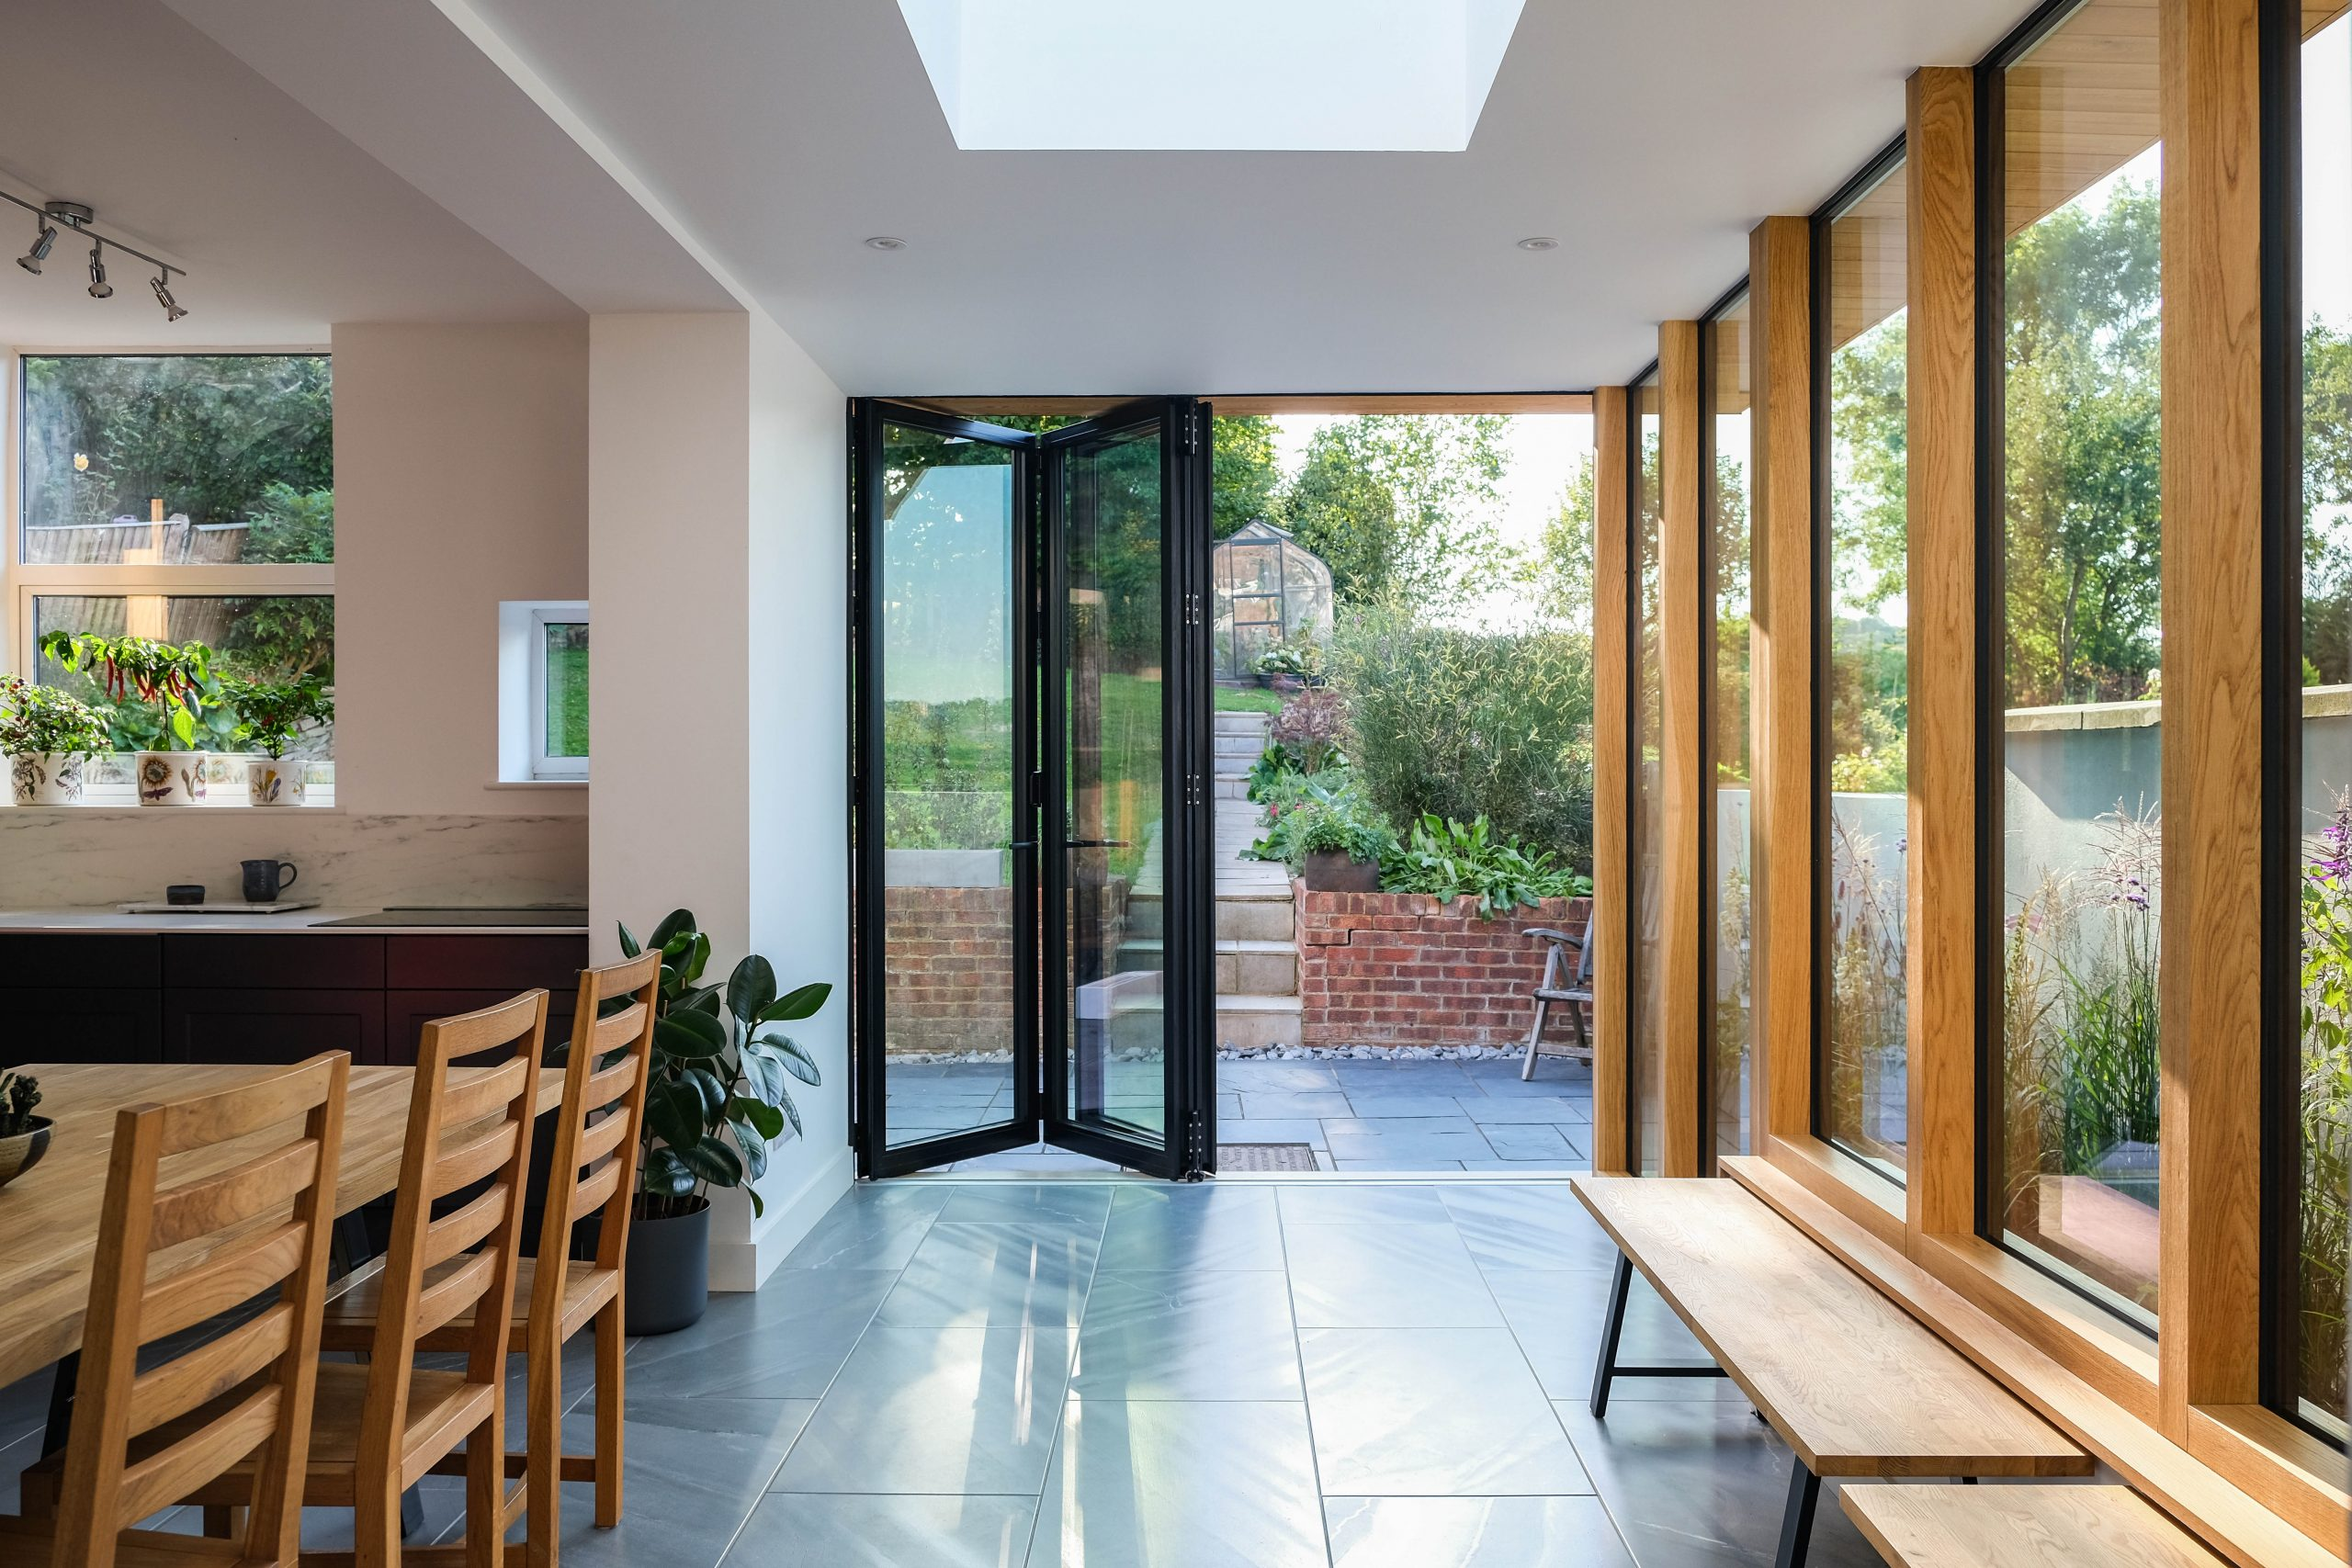 Modern kitchen extension with bifold doors